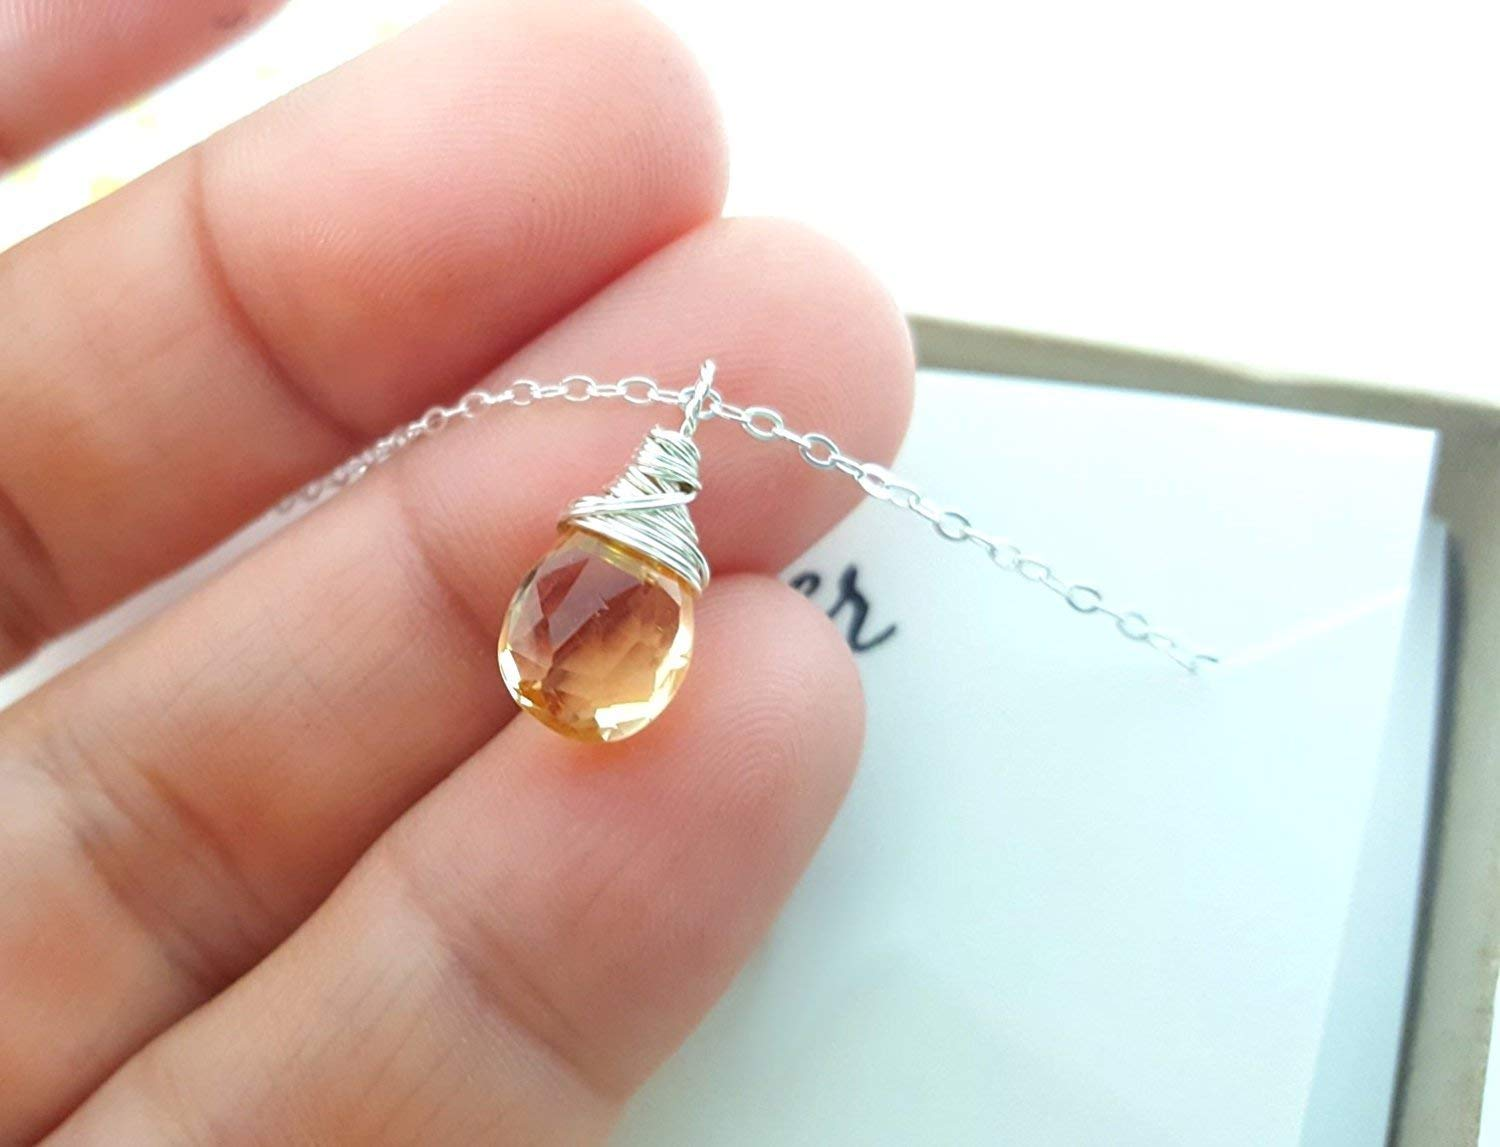 November Birthstone Yellow Citrine Necklace Sterling Silver Briolette Teardrop Jewelry Gift for Her